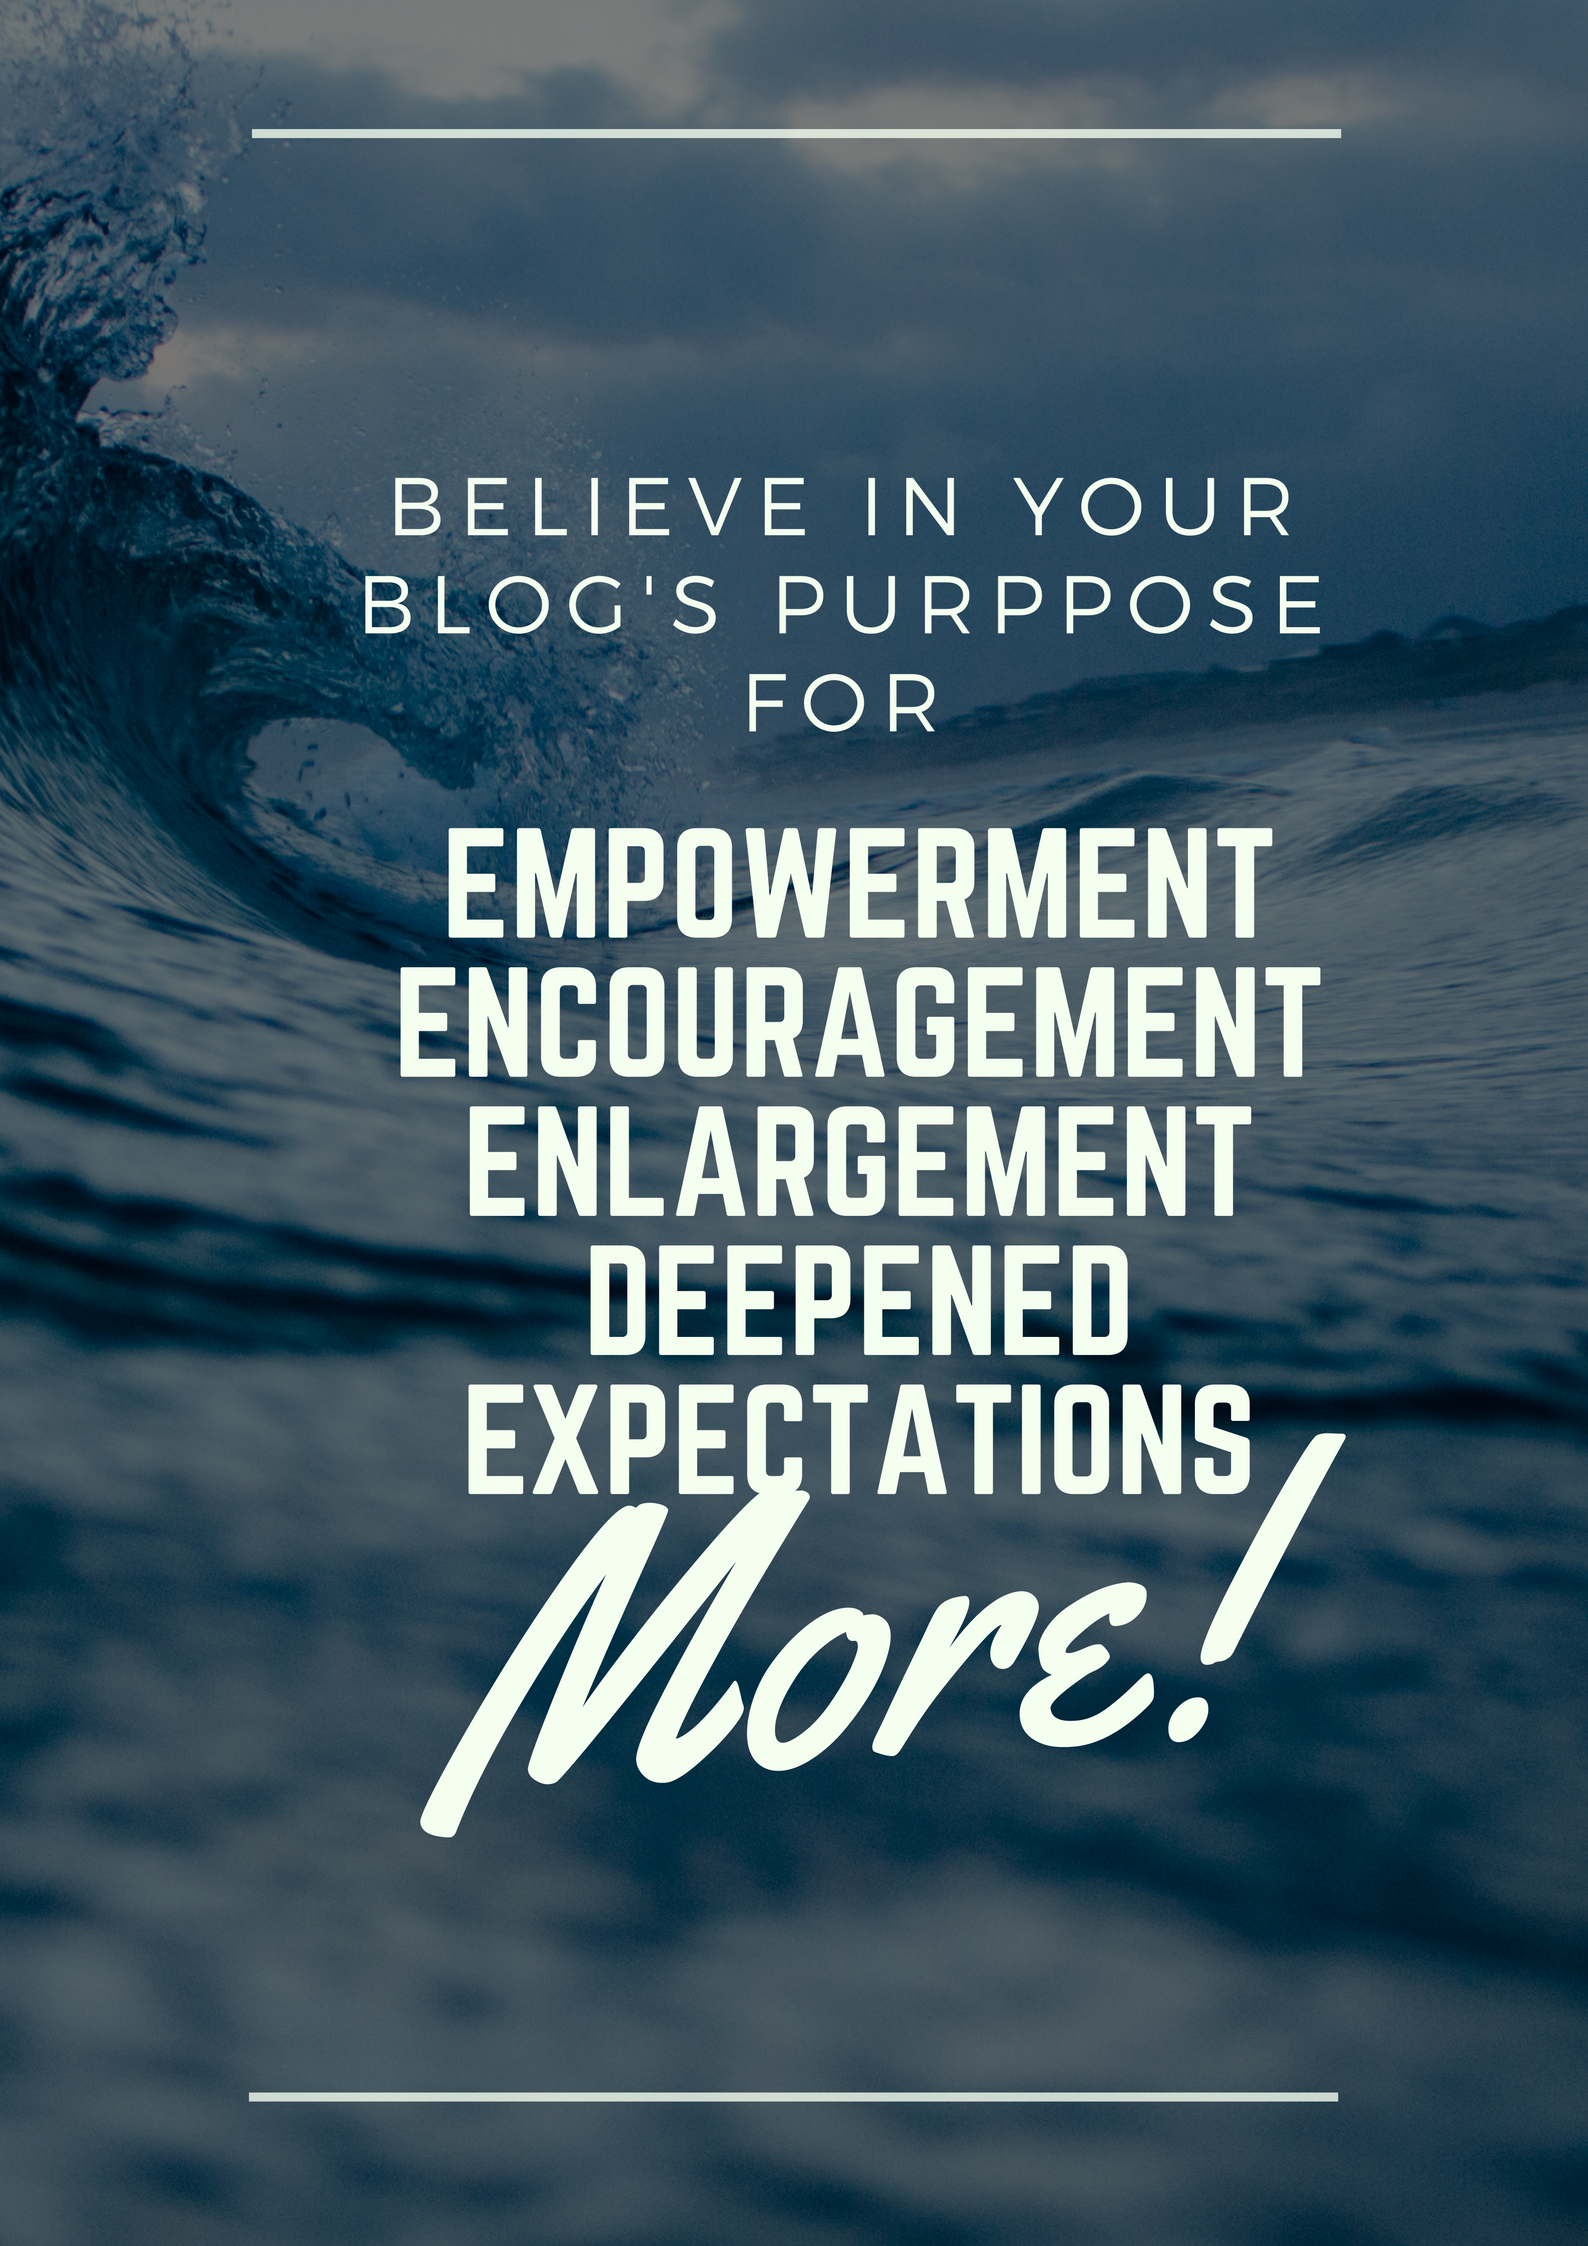 Your belief empowers you